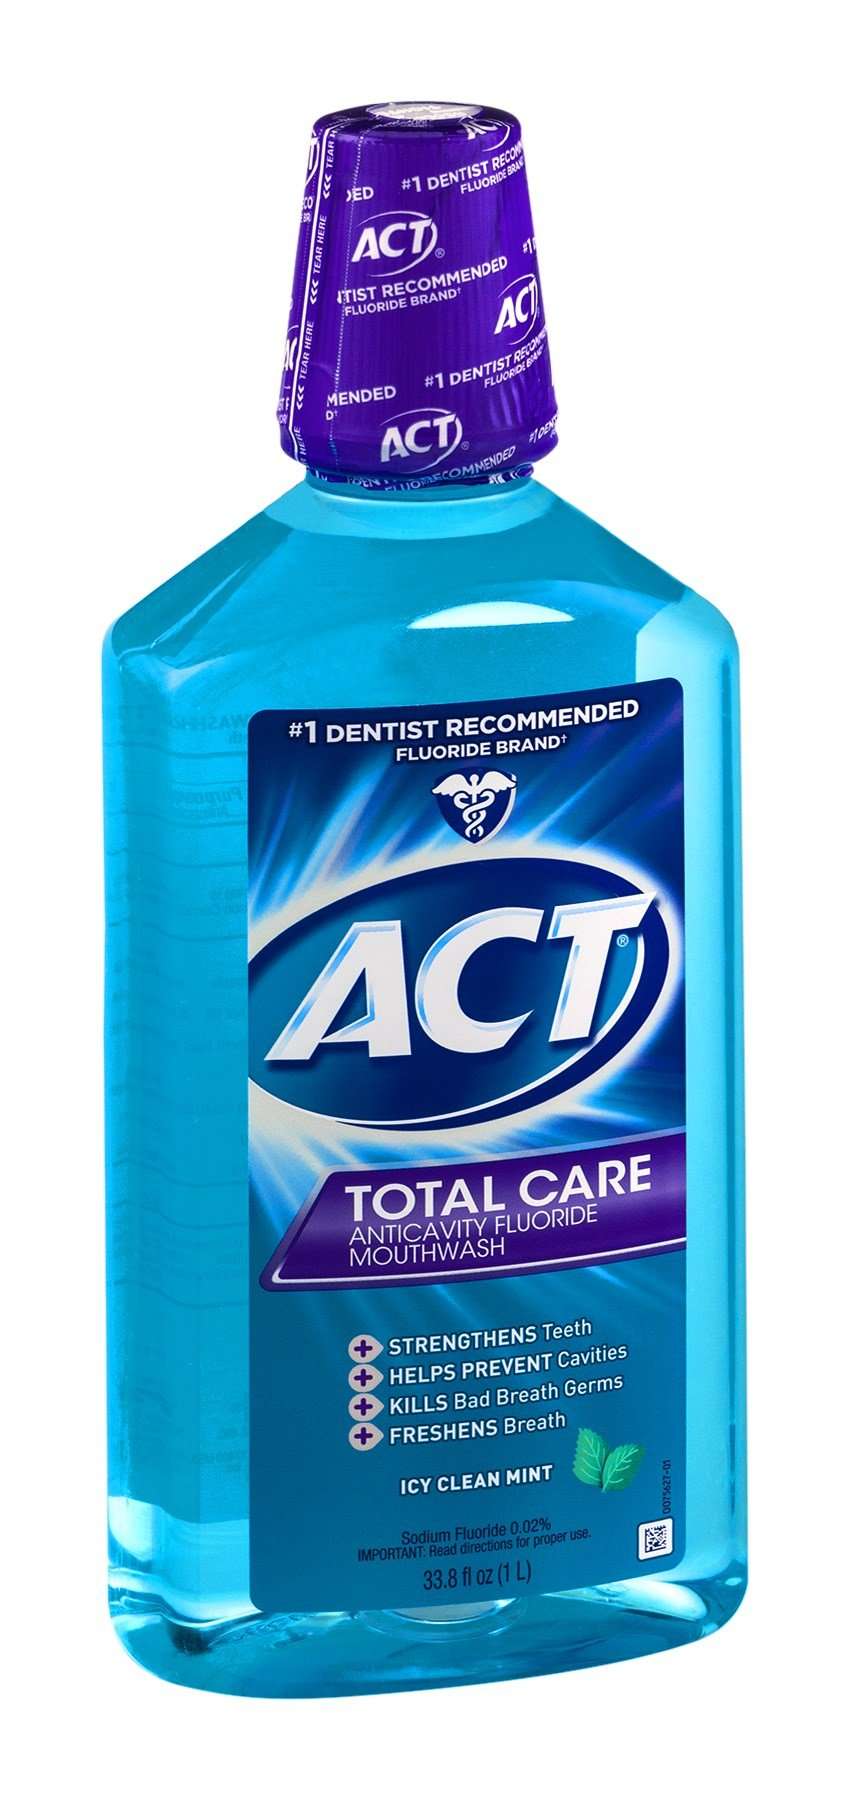 Act Total Care Anticavity Fluoride Mouthwash Icy Clean Mint